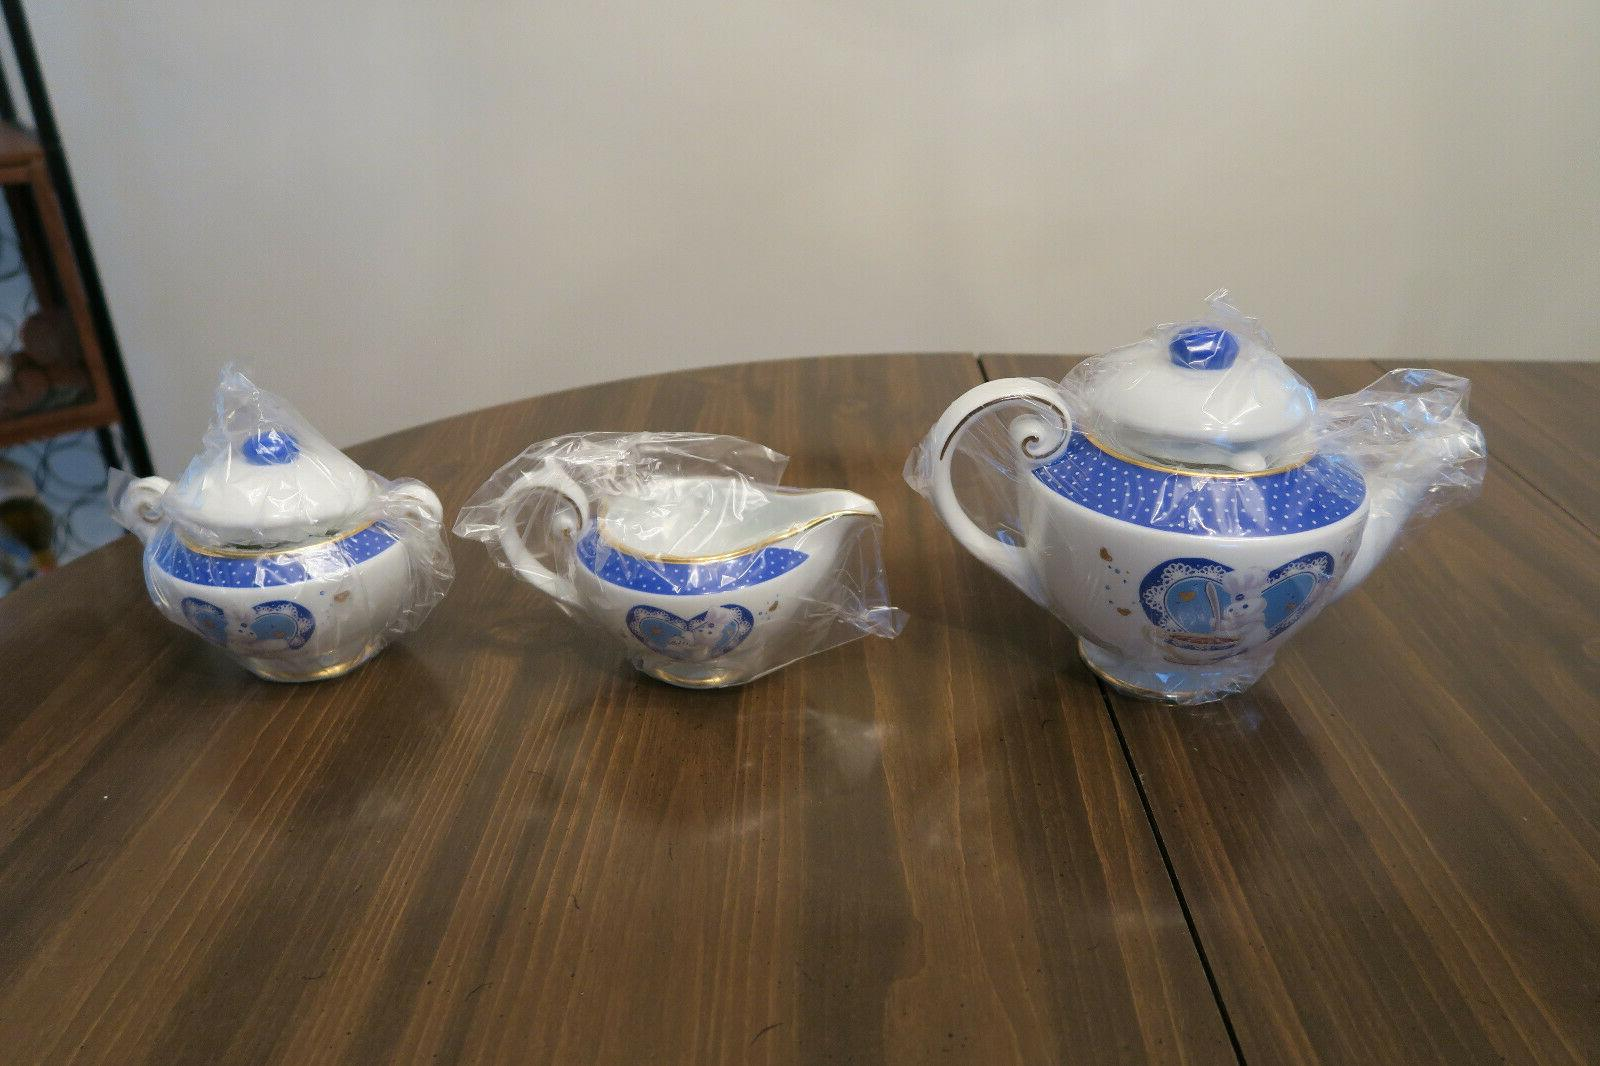 2003 Danbury Mint Pillsbury Doughboy Teapot Tea Set 5pc Porc